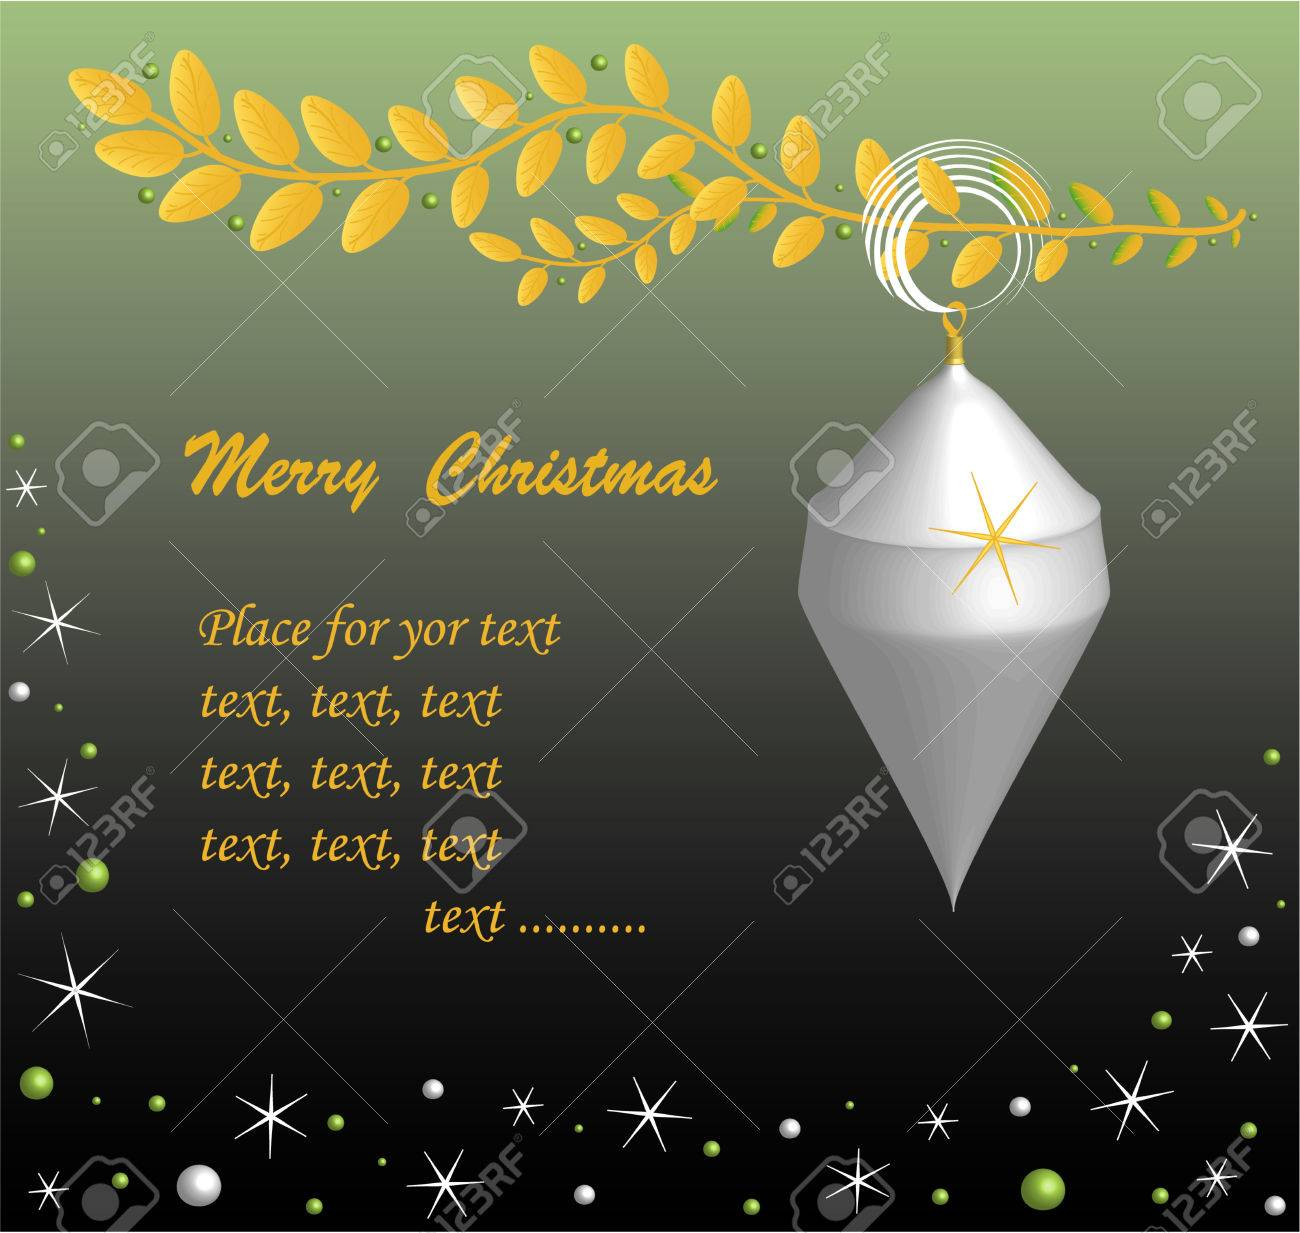 Christmas Card Sample Text Vector Royalty Free Cliparts Vectors – Sample of Christmas Greetings